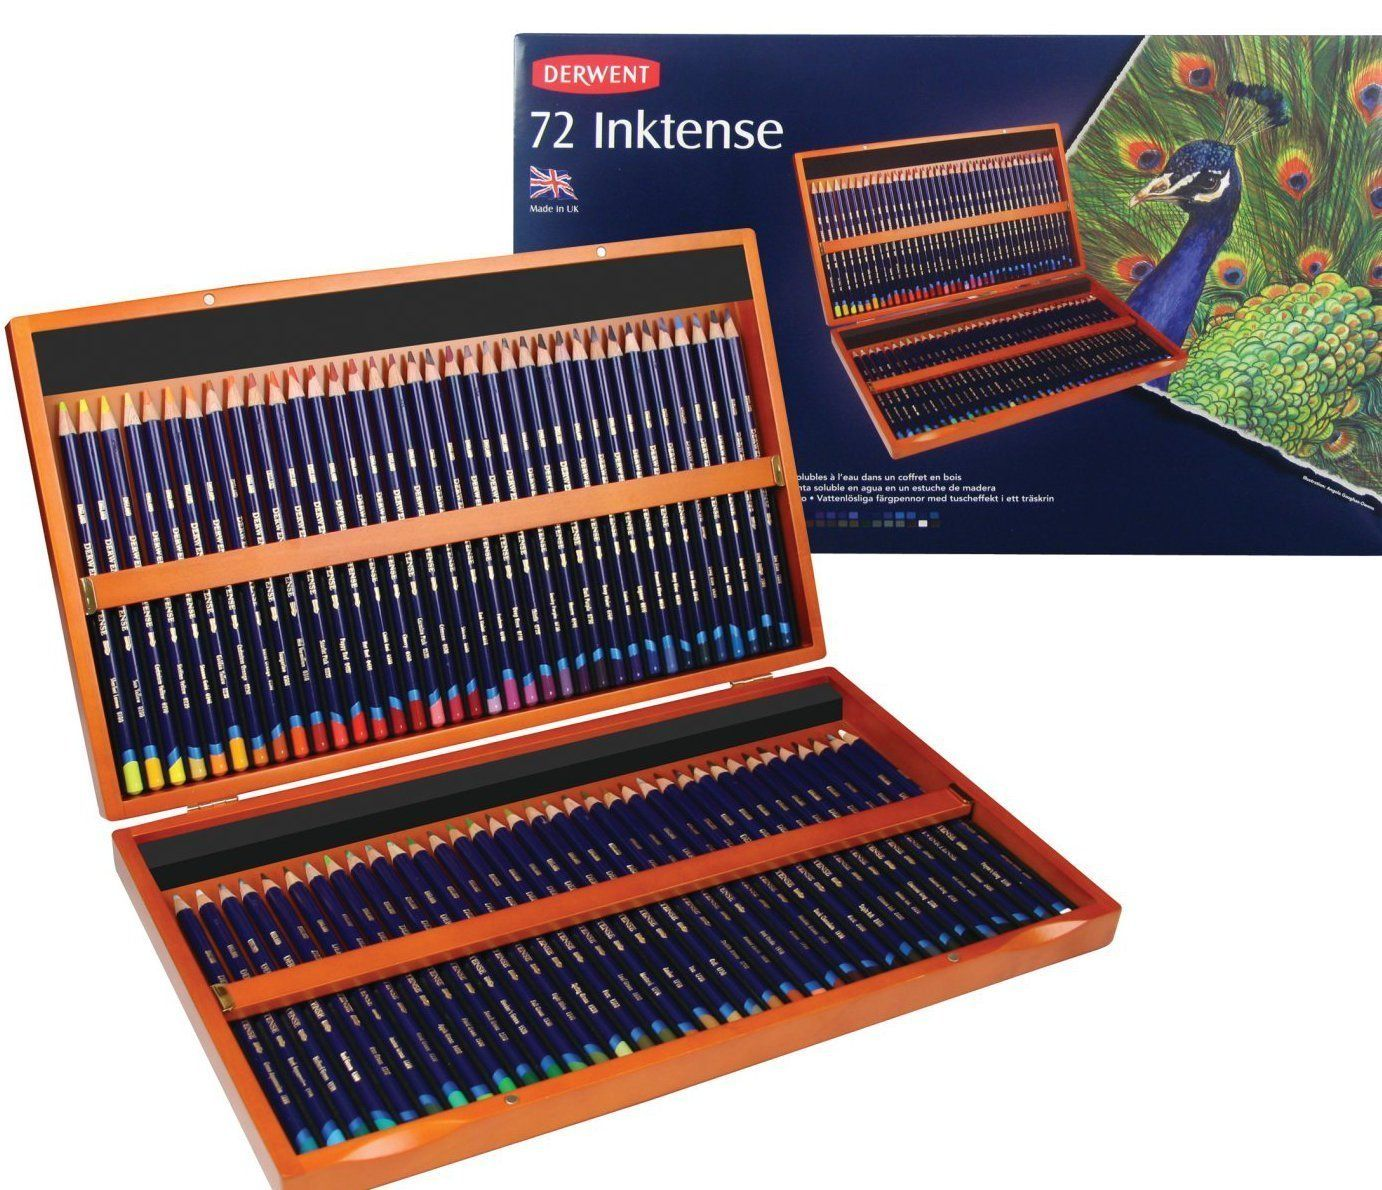 Amazon Com Derwent Inktense Pencils 4mm Core Wooden Box 72